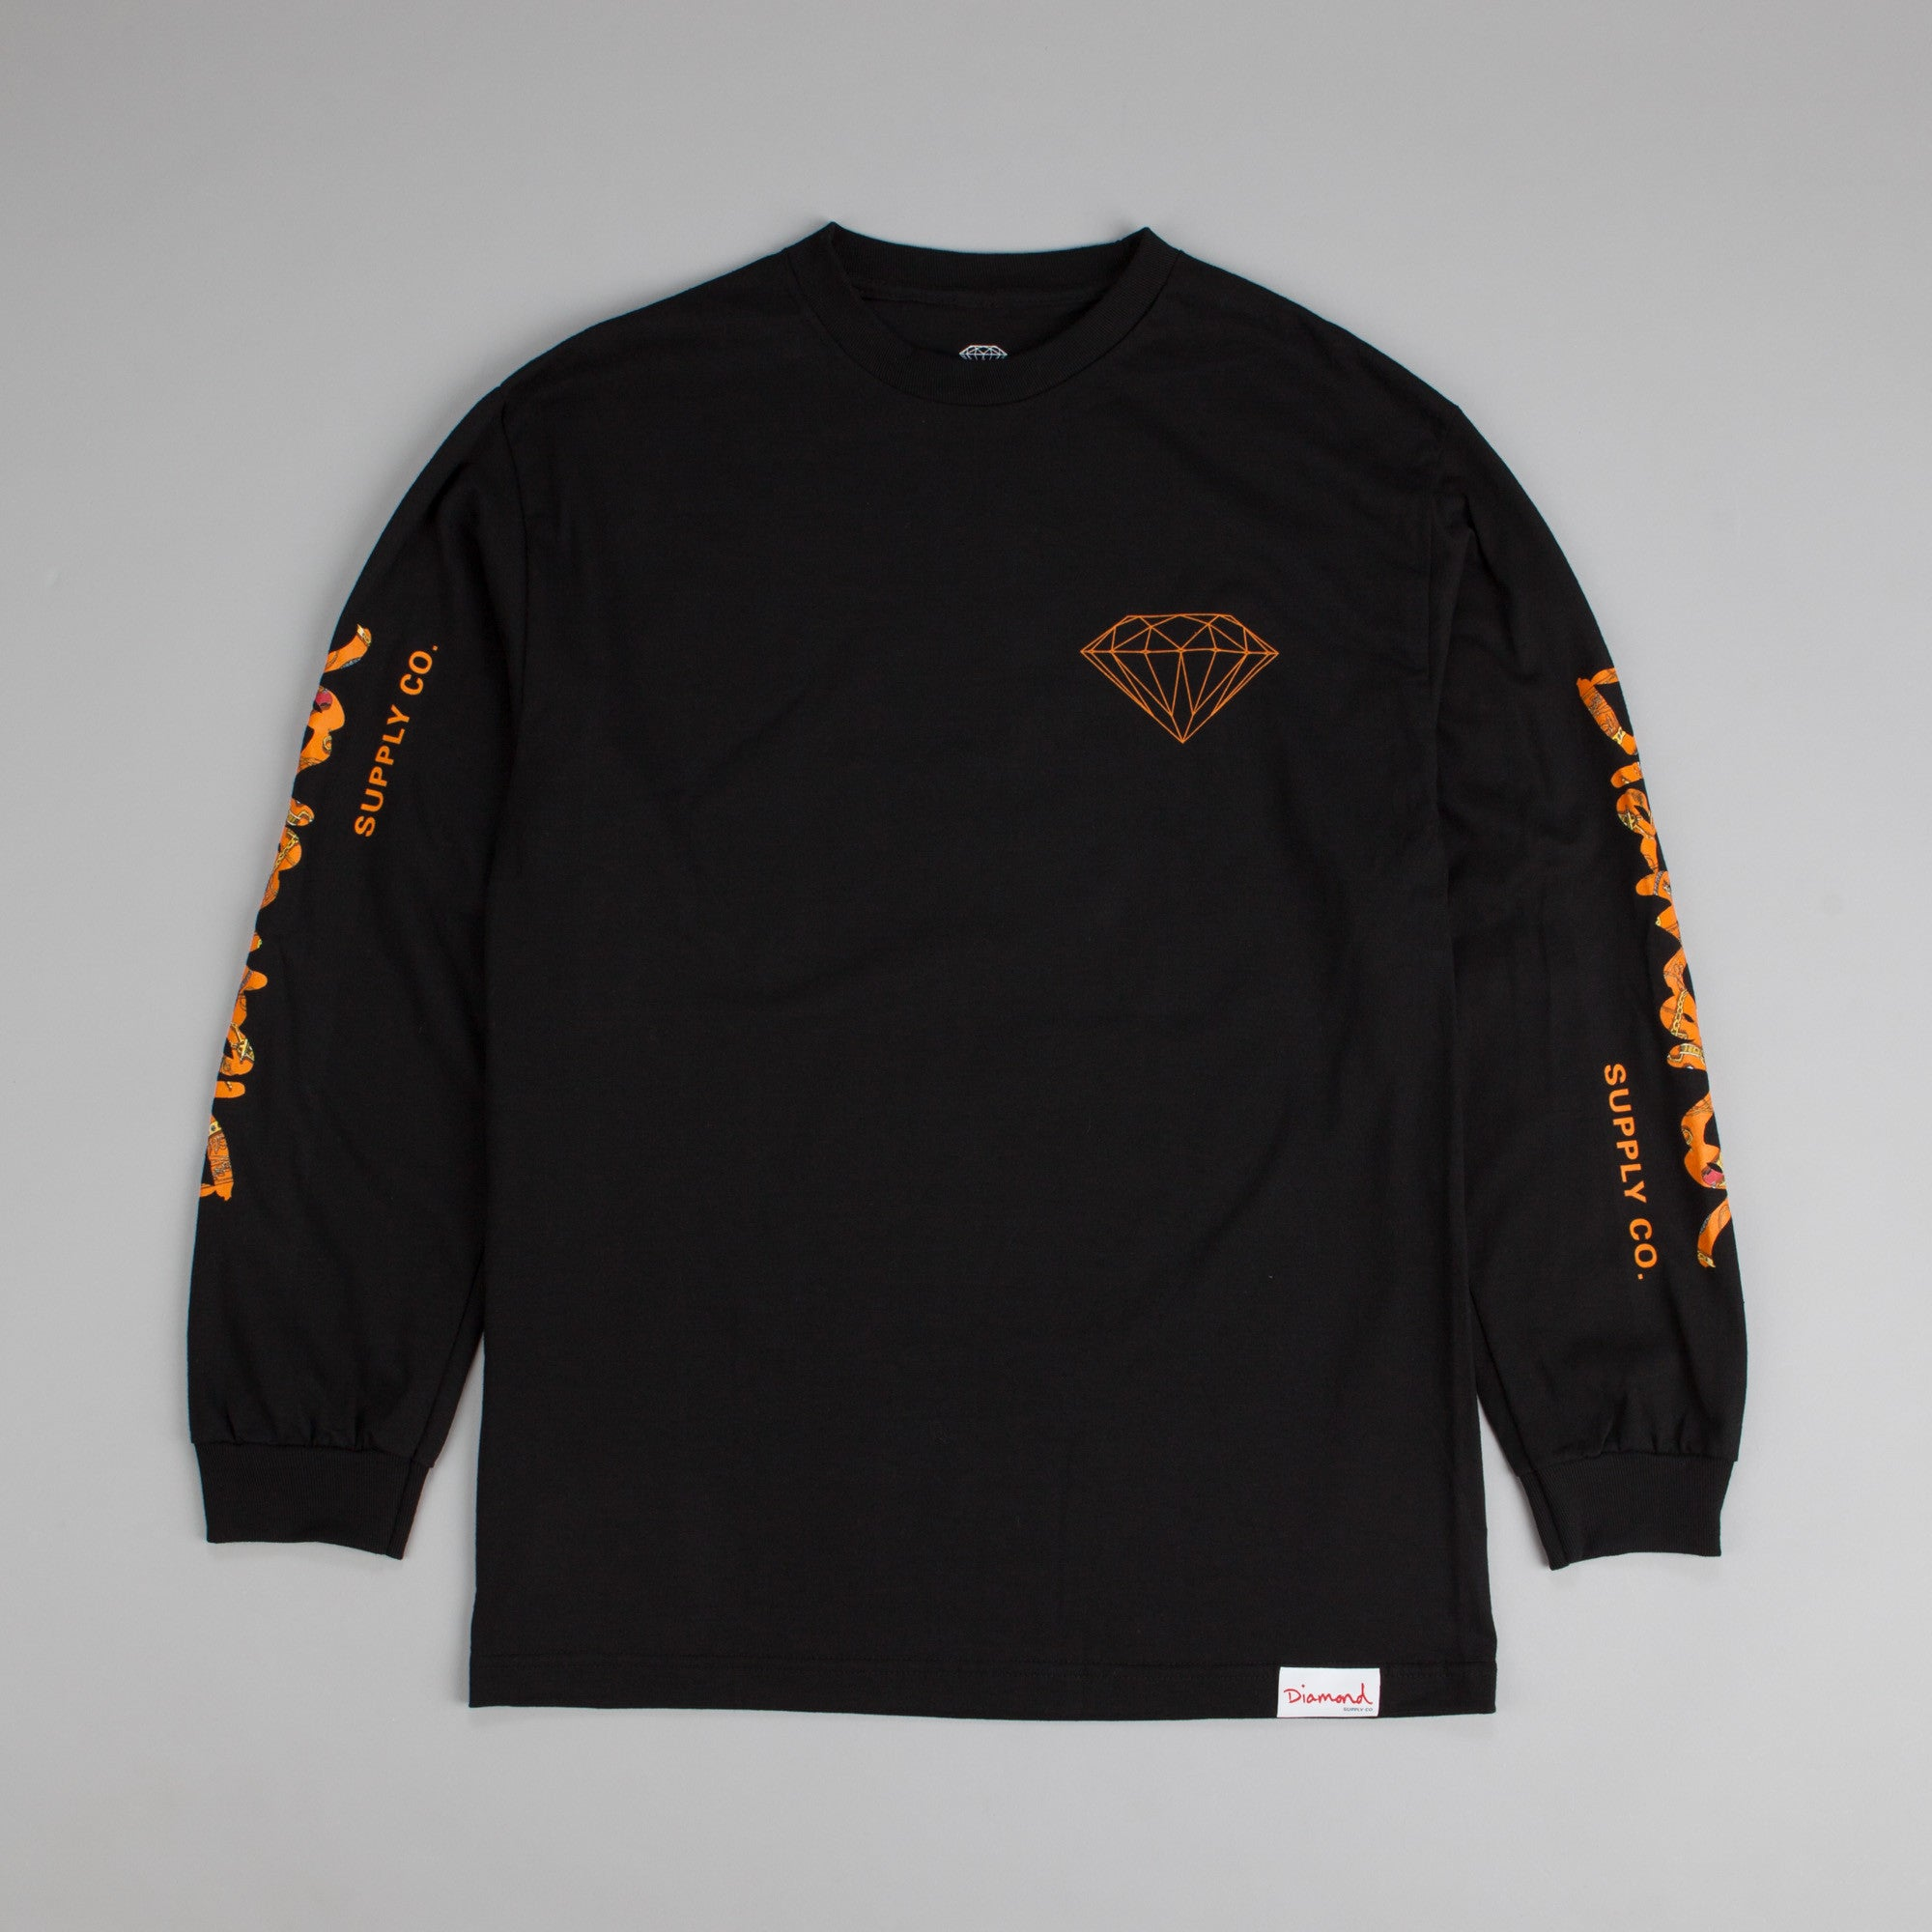 Diamond Low Life Long Sleeve T Shirt Black